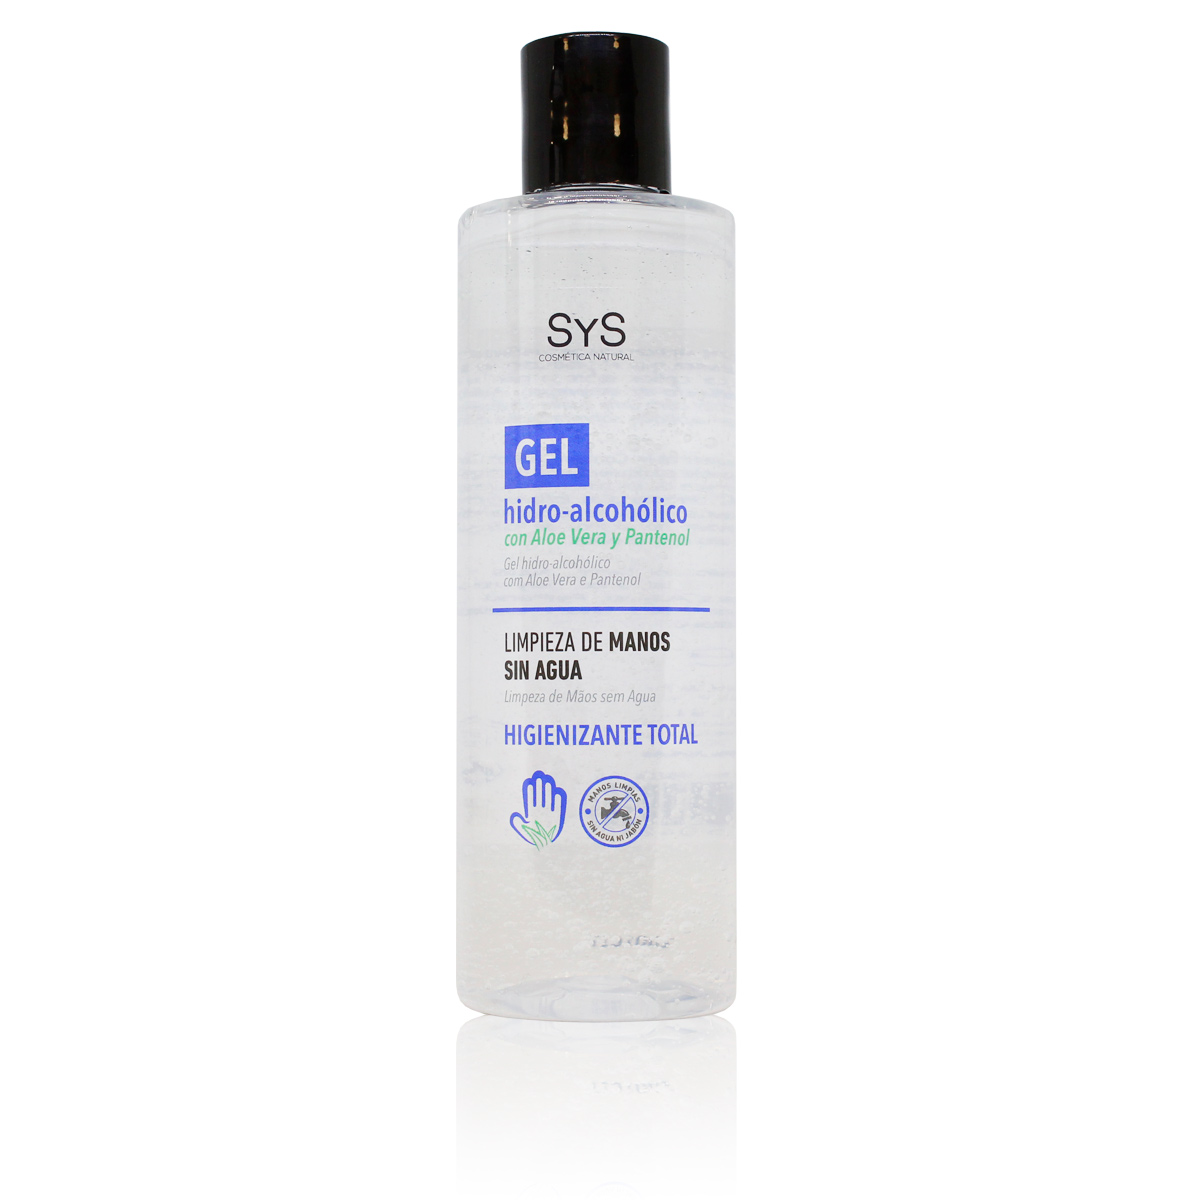 GEL HIDROALCOHOLICO Hands 250 ML / 70% ALCOHOL Disinfectant-ANTISEPTICO-cleaning Hands-on ALCOHOL And ALOE VERA